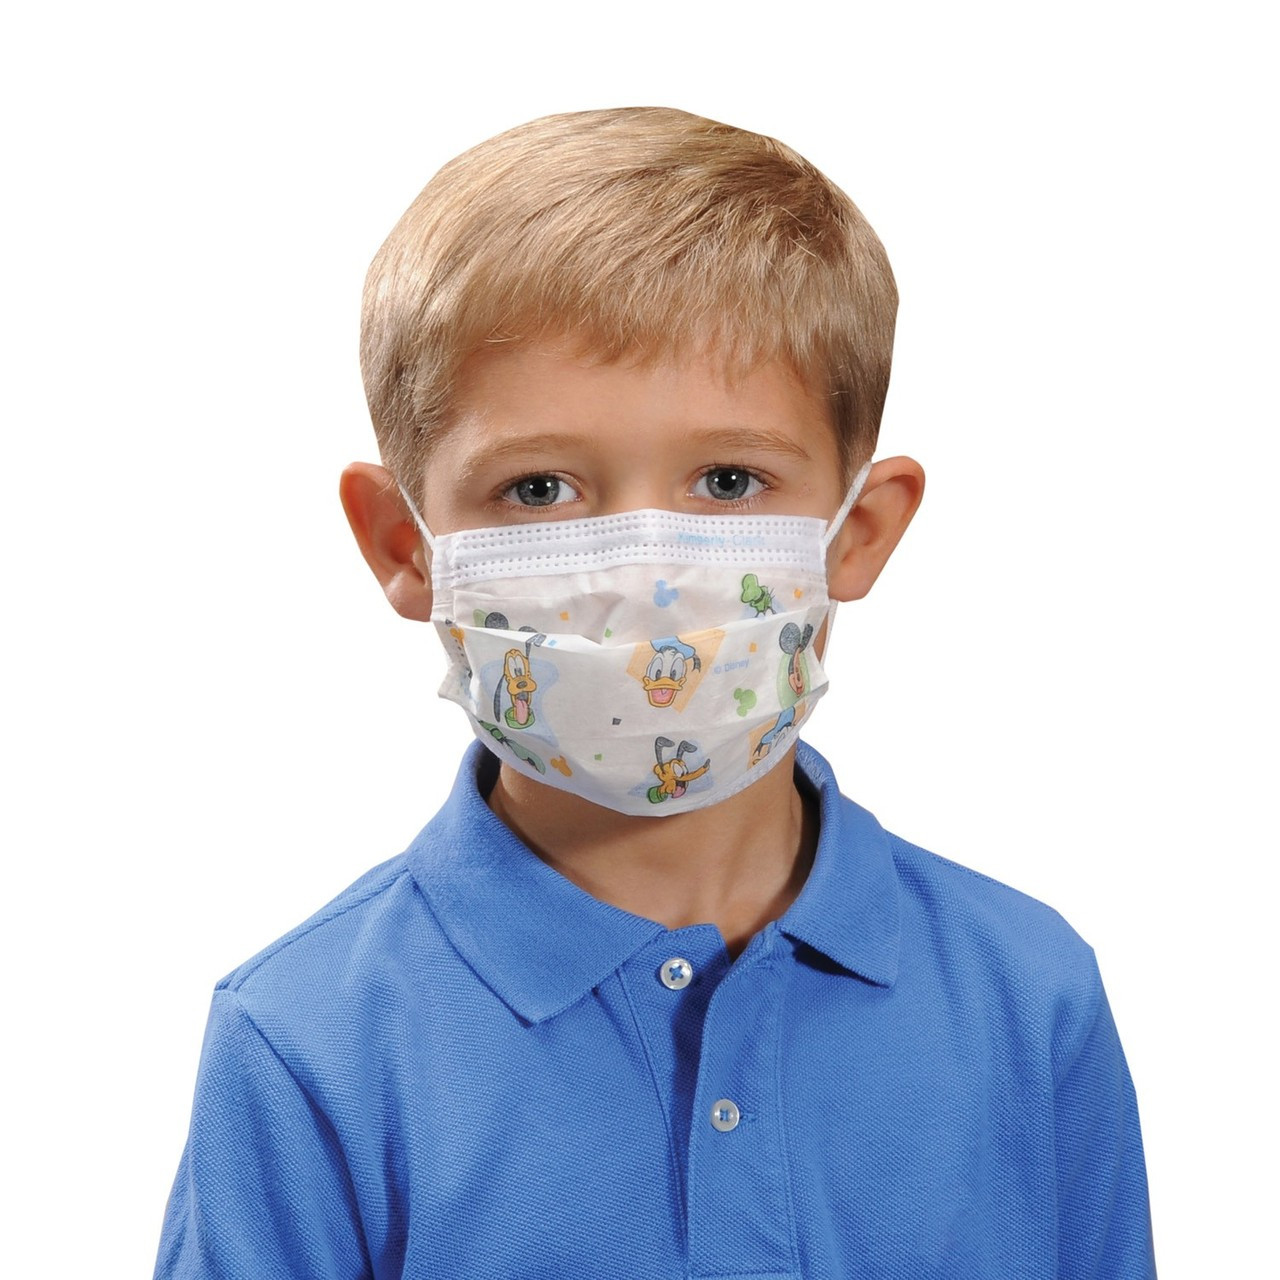 3m children mask